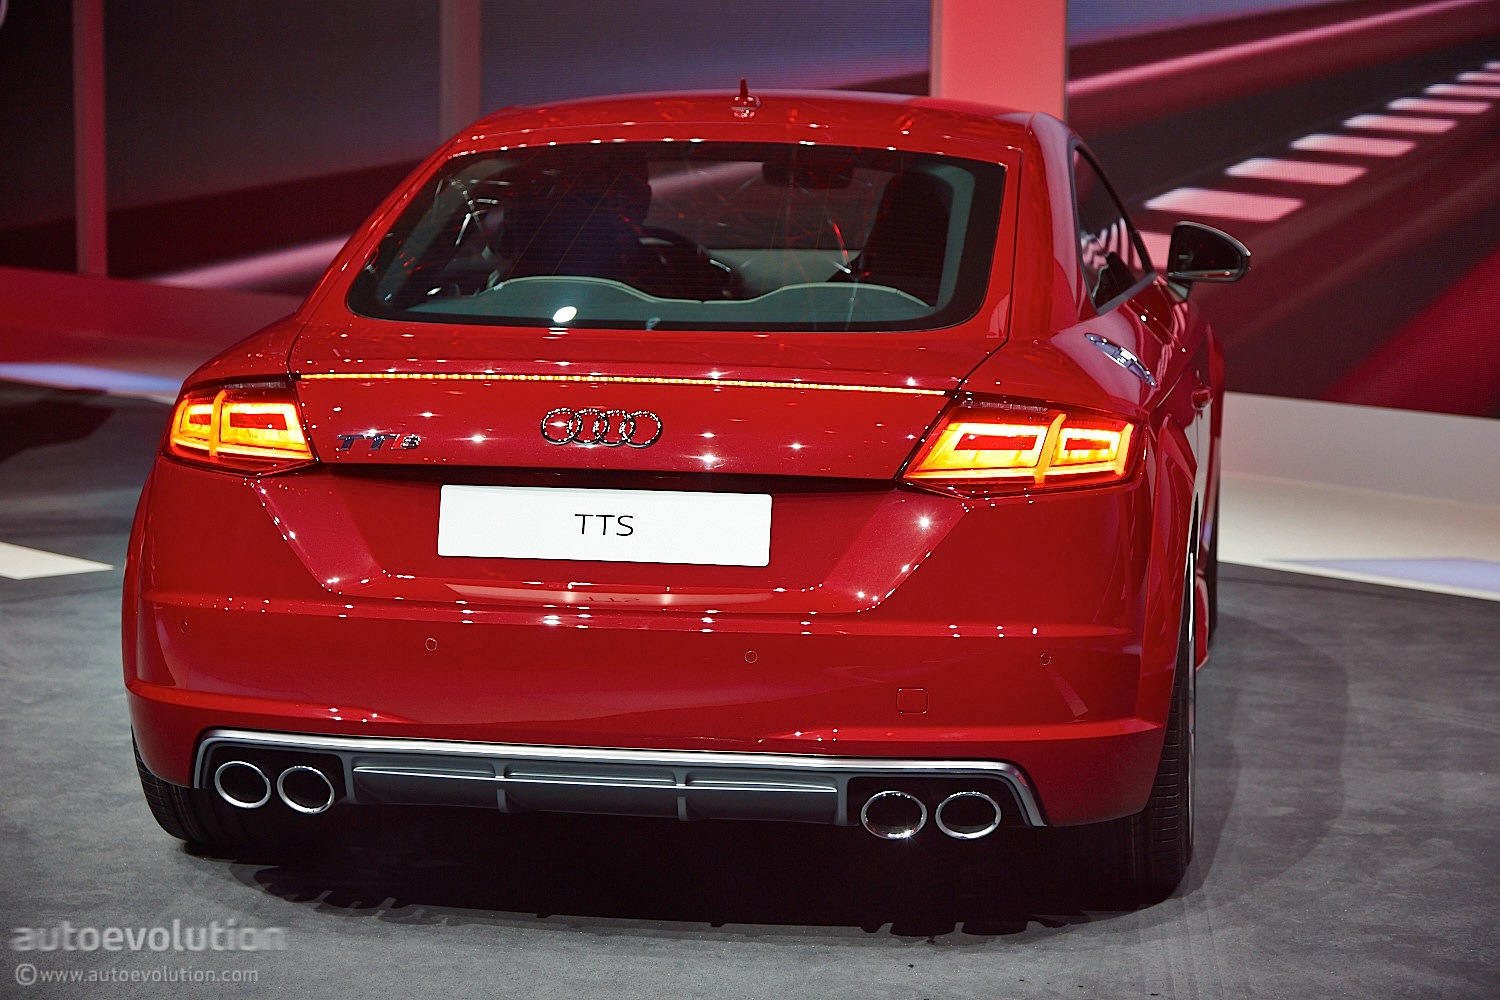 new audi tts priced at �49100 in germany � the most